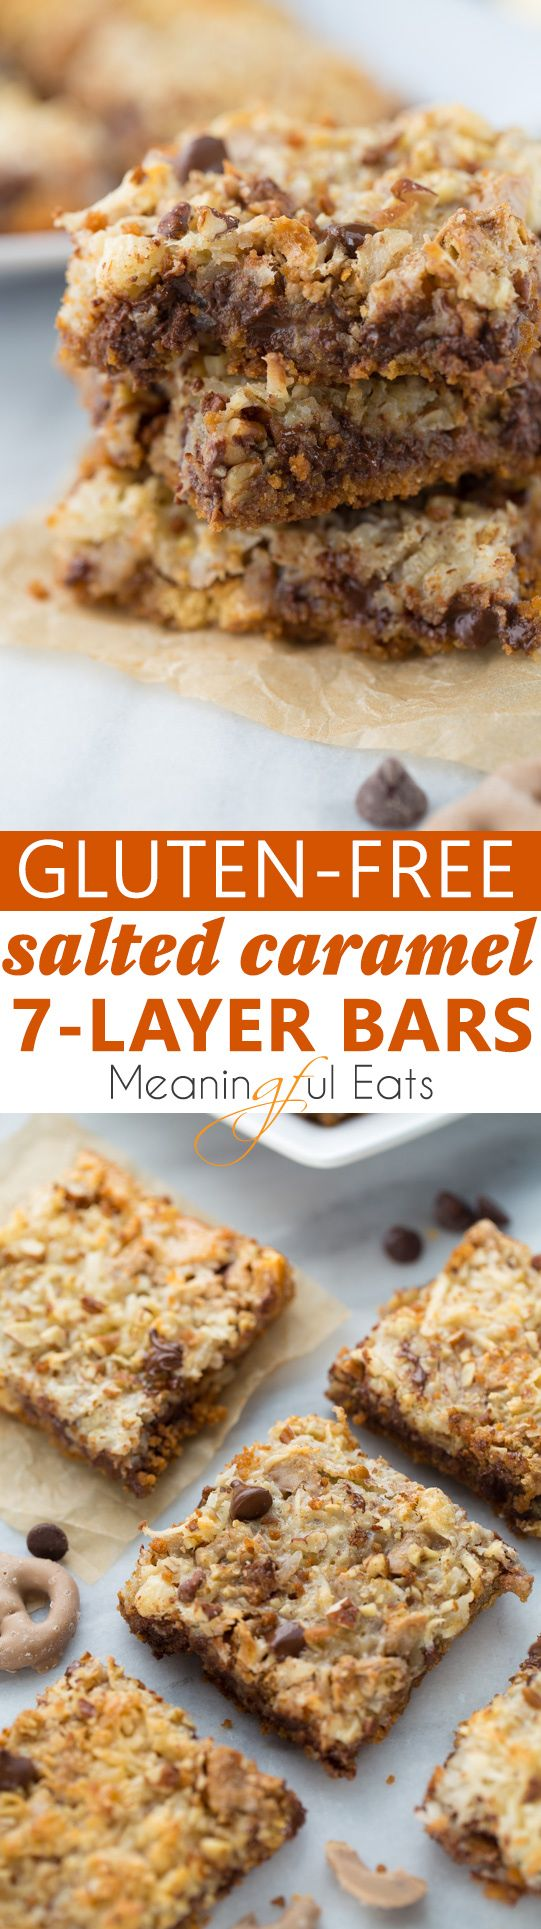 Gluten-Free Salted Caramel 7-Layer Bars! An ooey-gooey decadent treat with a sweet and salty twist. So easy to make!